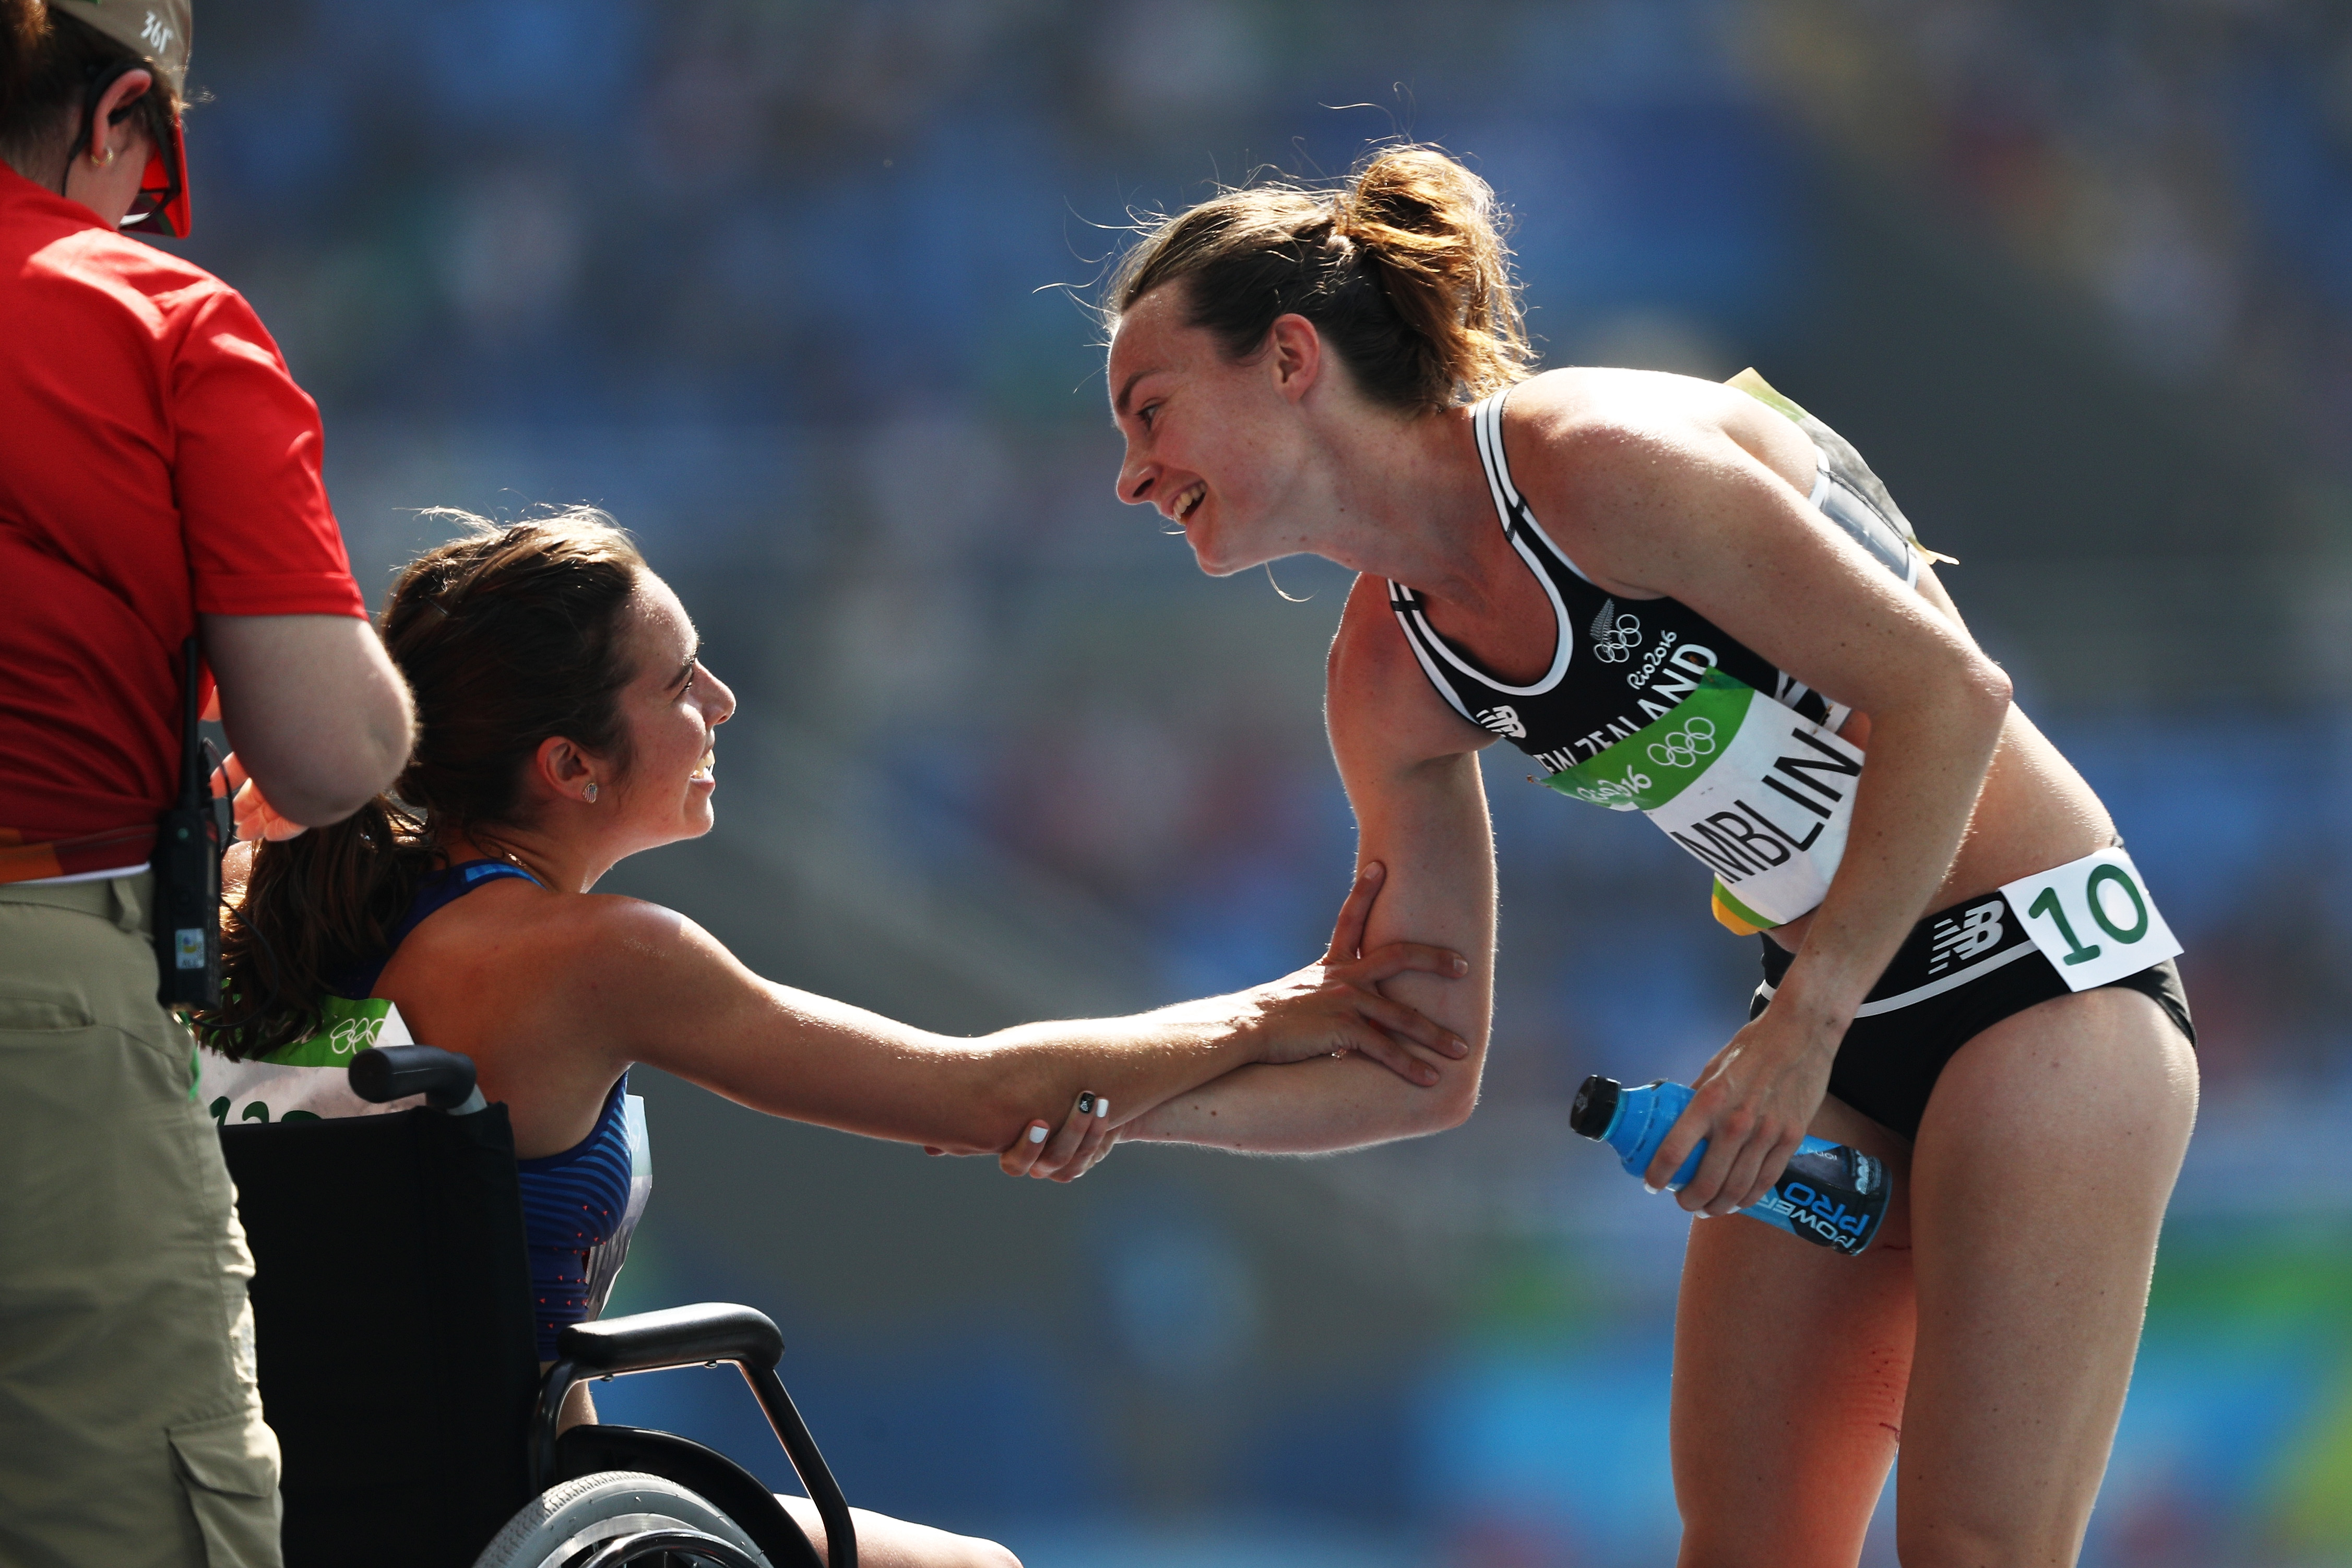 RIO DE JANEIRO, BRAZIL - AUGUST 16: Abbey D'Agostino of the United States (L) talks with Nikki Hamblin of New Zealand after the Women's 5000m Round 1 - Heat 2 on Day 11 of the Rio 2016 Olympic Games at the Olympic Stadium on August 16, 2016 in Rio de Janeiro, Brazil. (Photo by Patrick Smith/Getty Images)